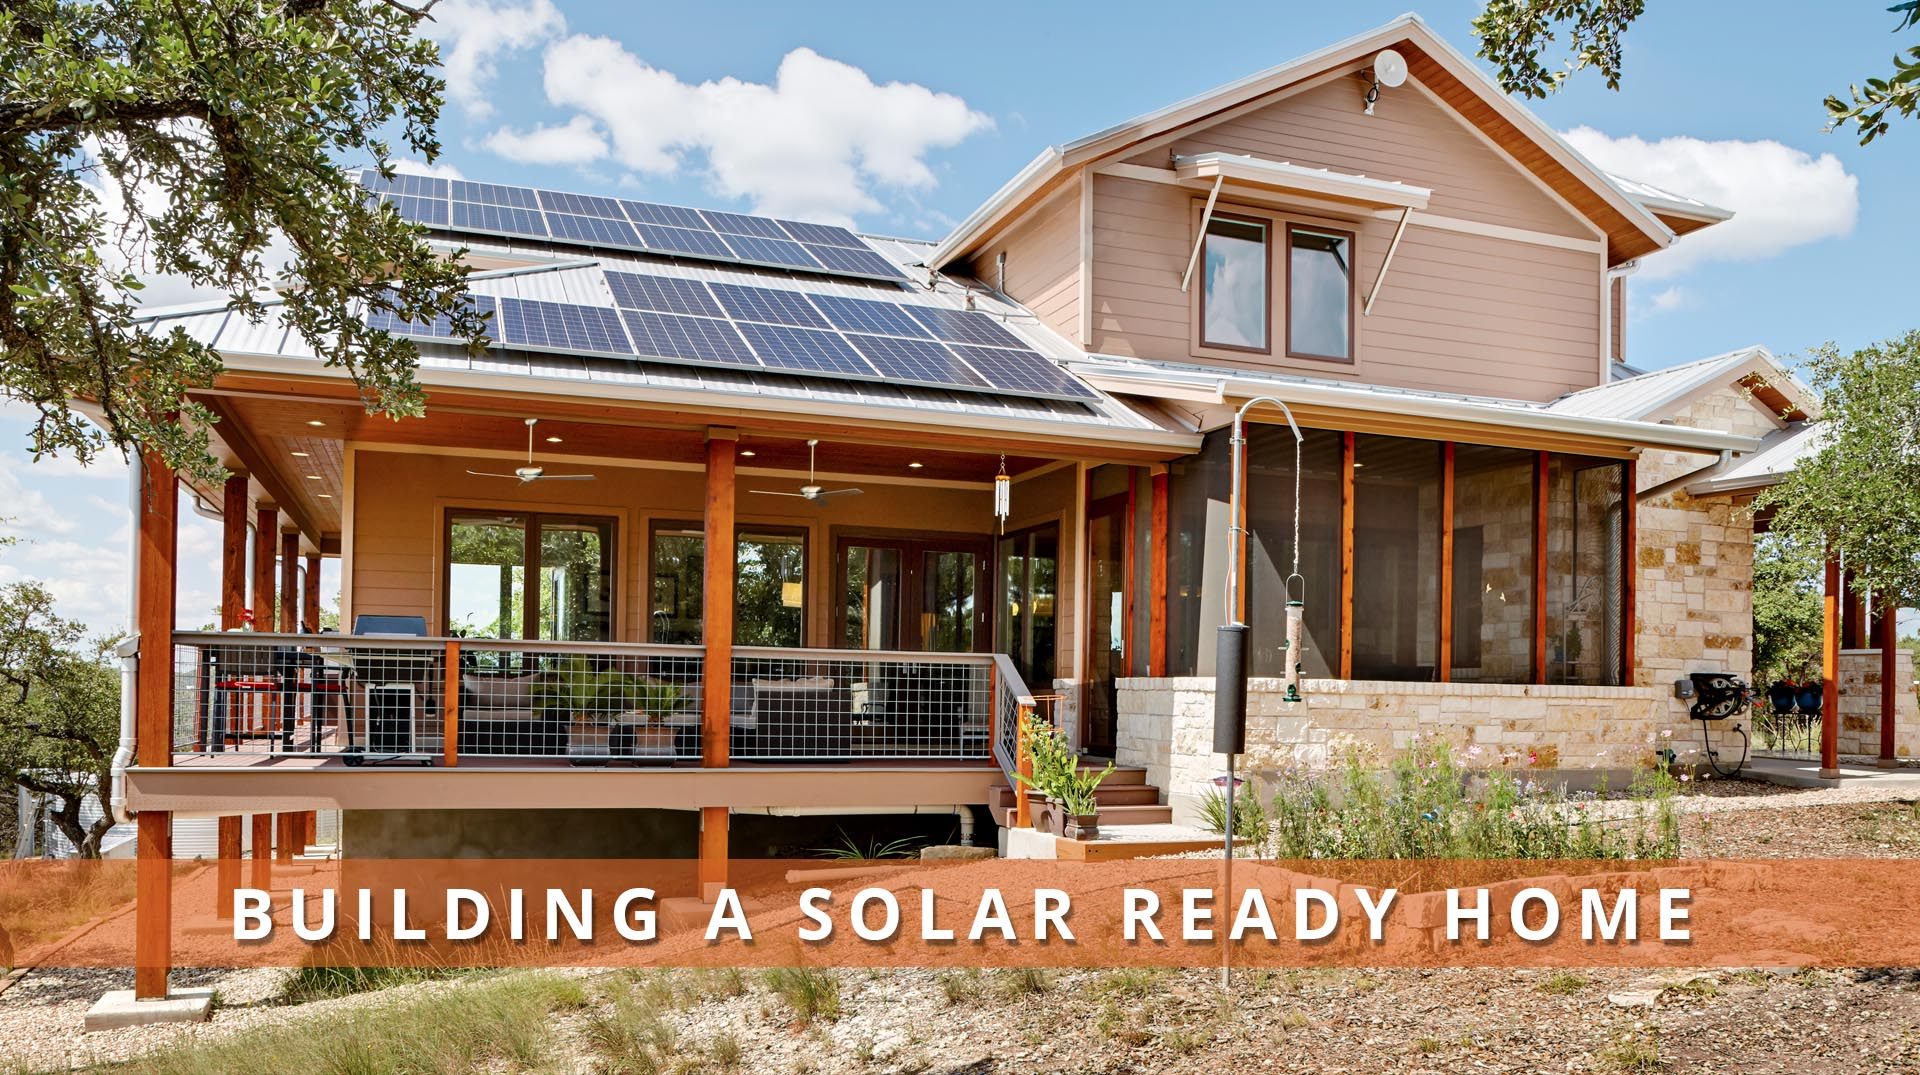 Cost to build a new house in austin - Building A Solar Ready Home